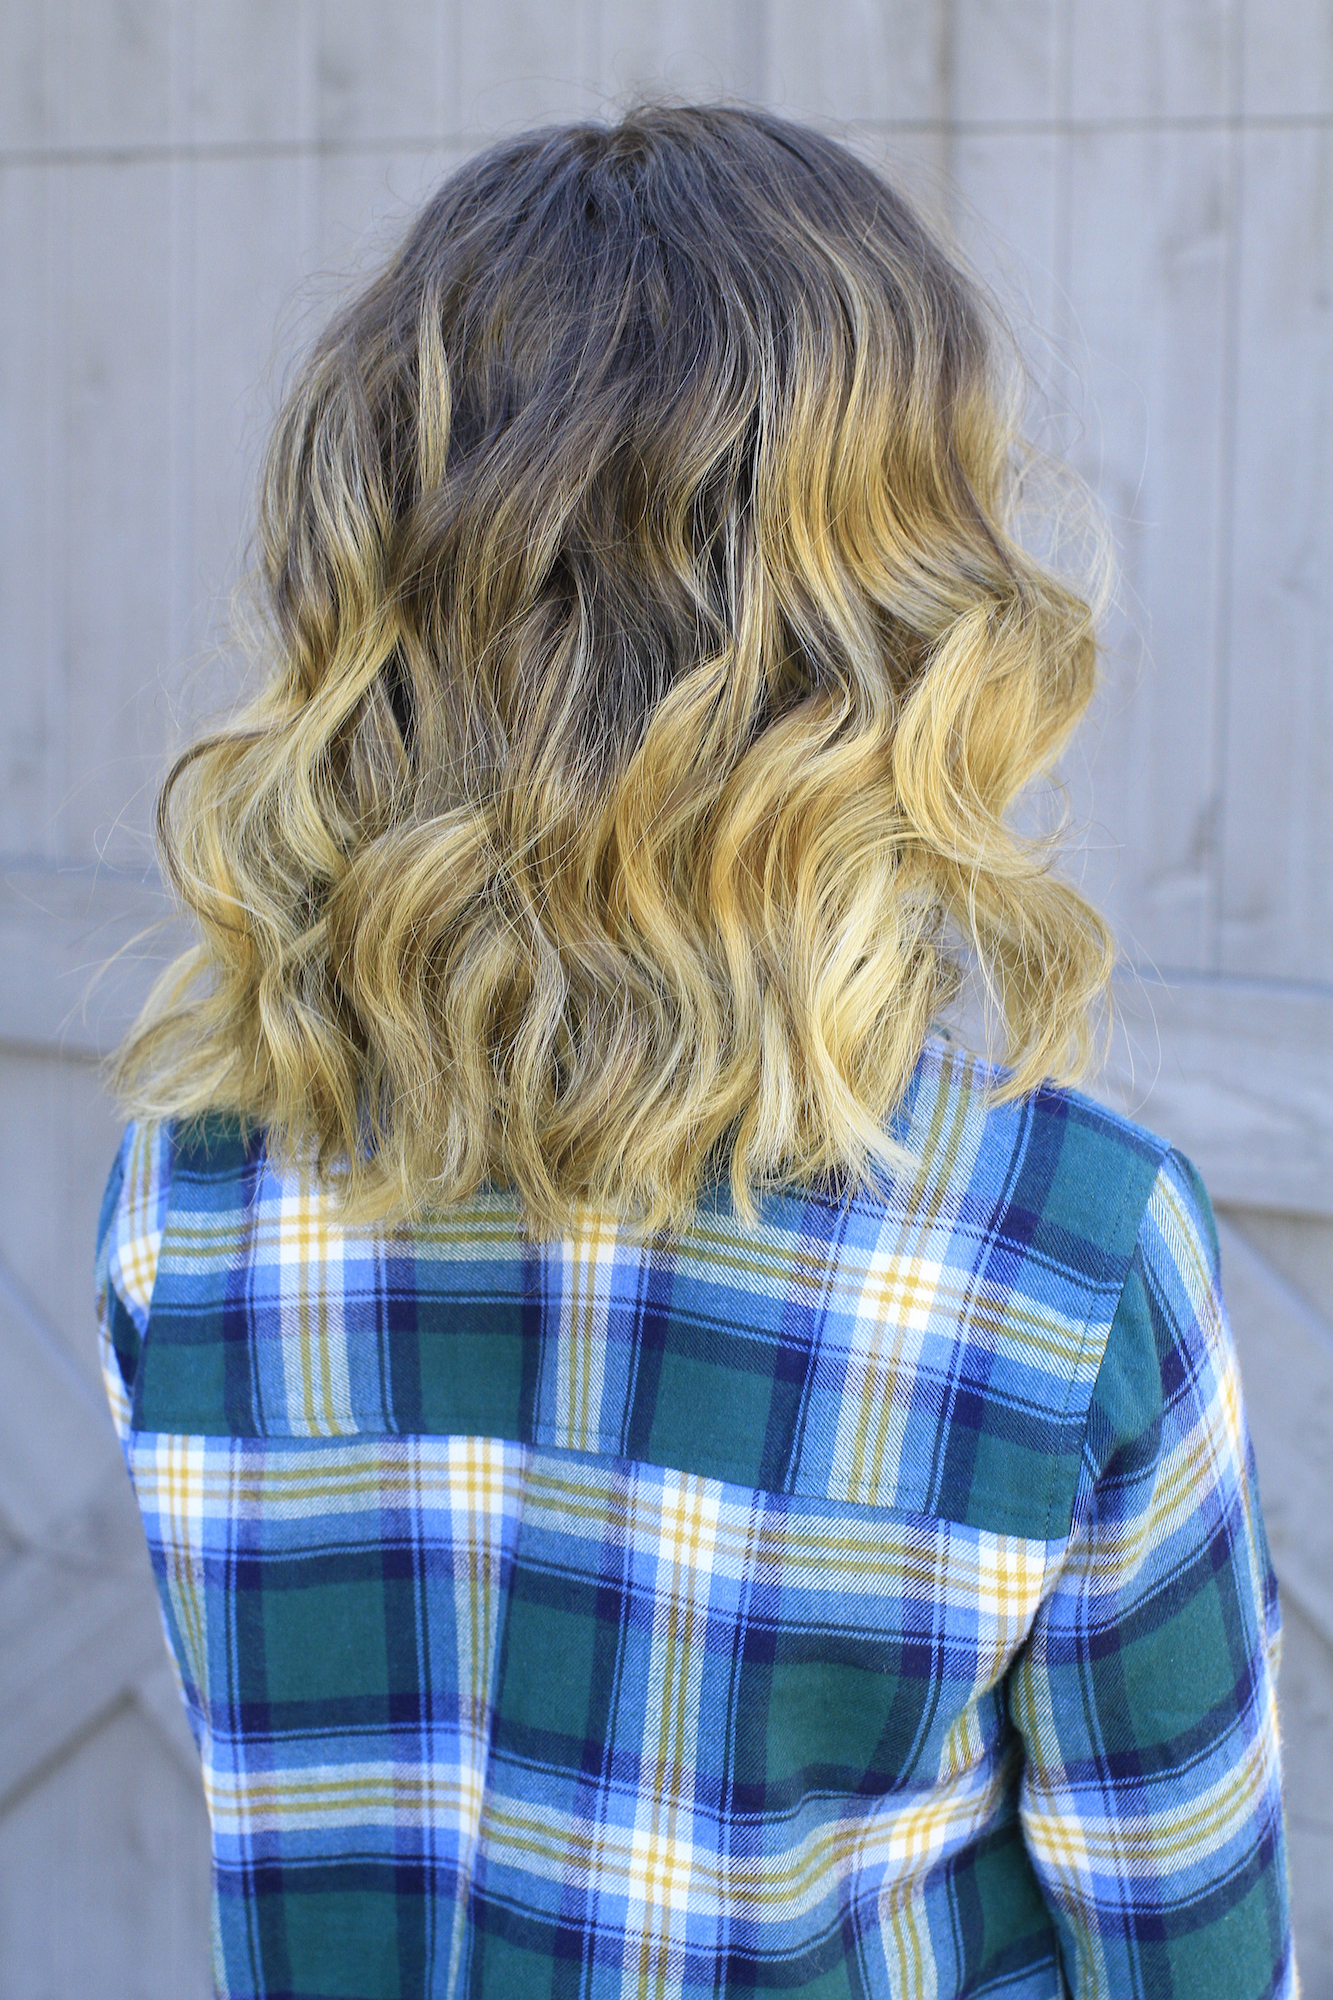 15 Pretty Hairstyles for Easter   Cute Girls Hairstyles